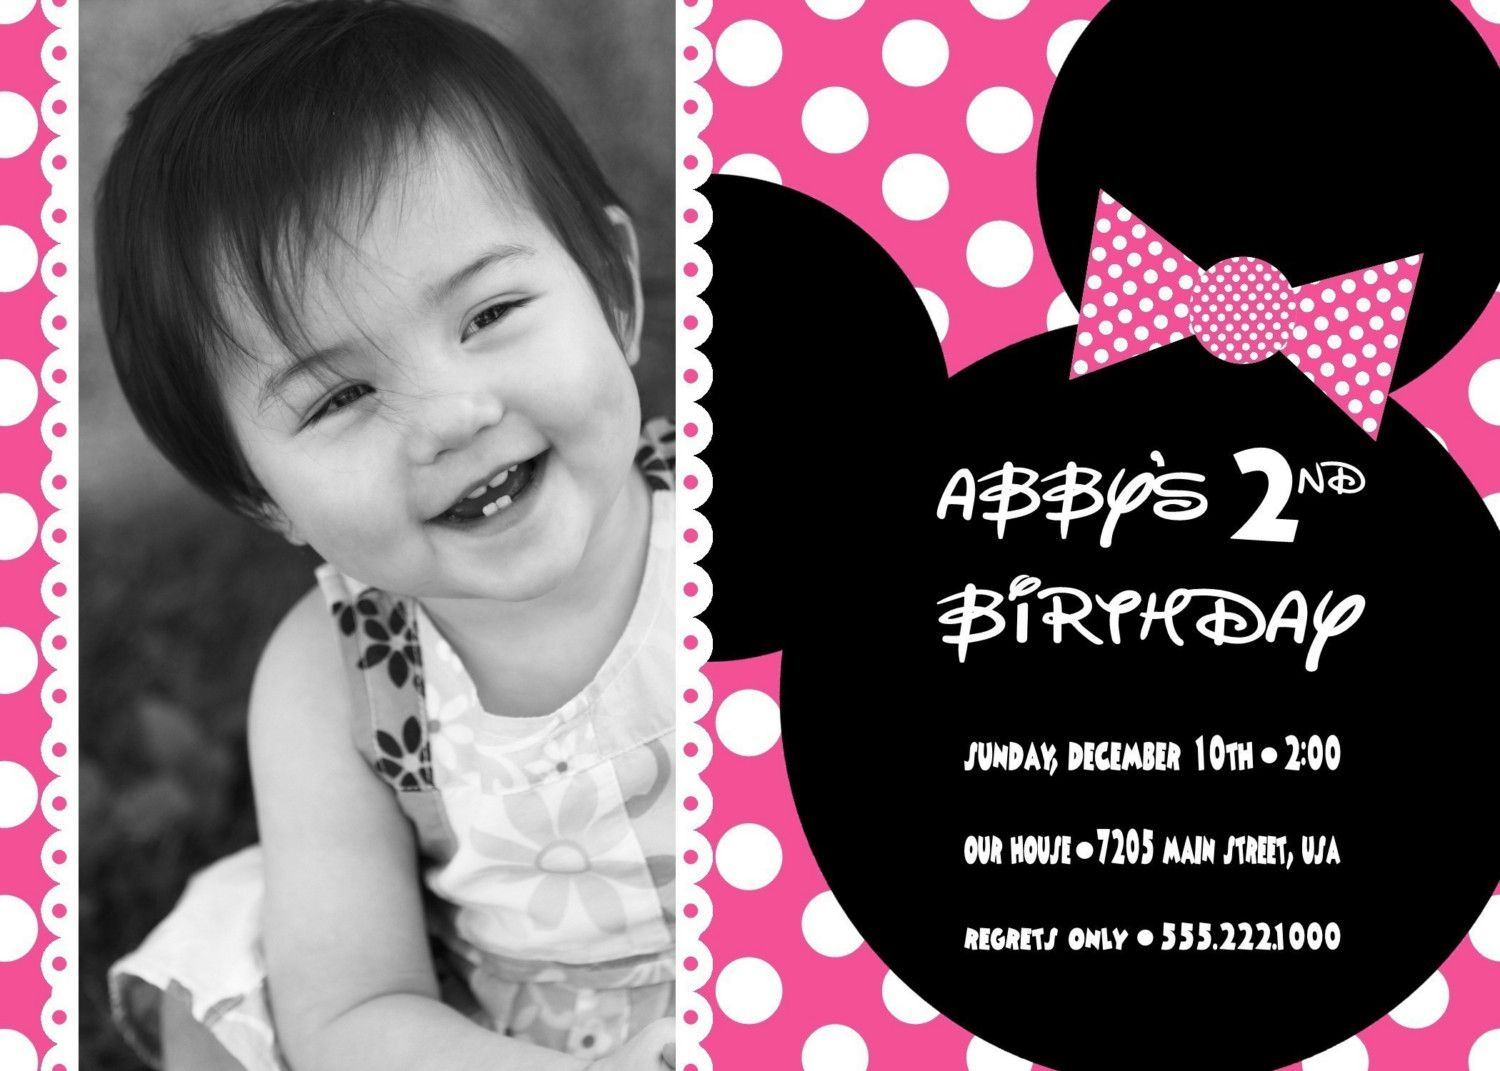 Free Printable Minnie Mouse Birthday Party Invitations ...